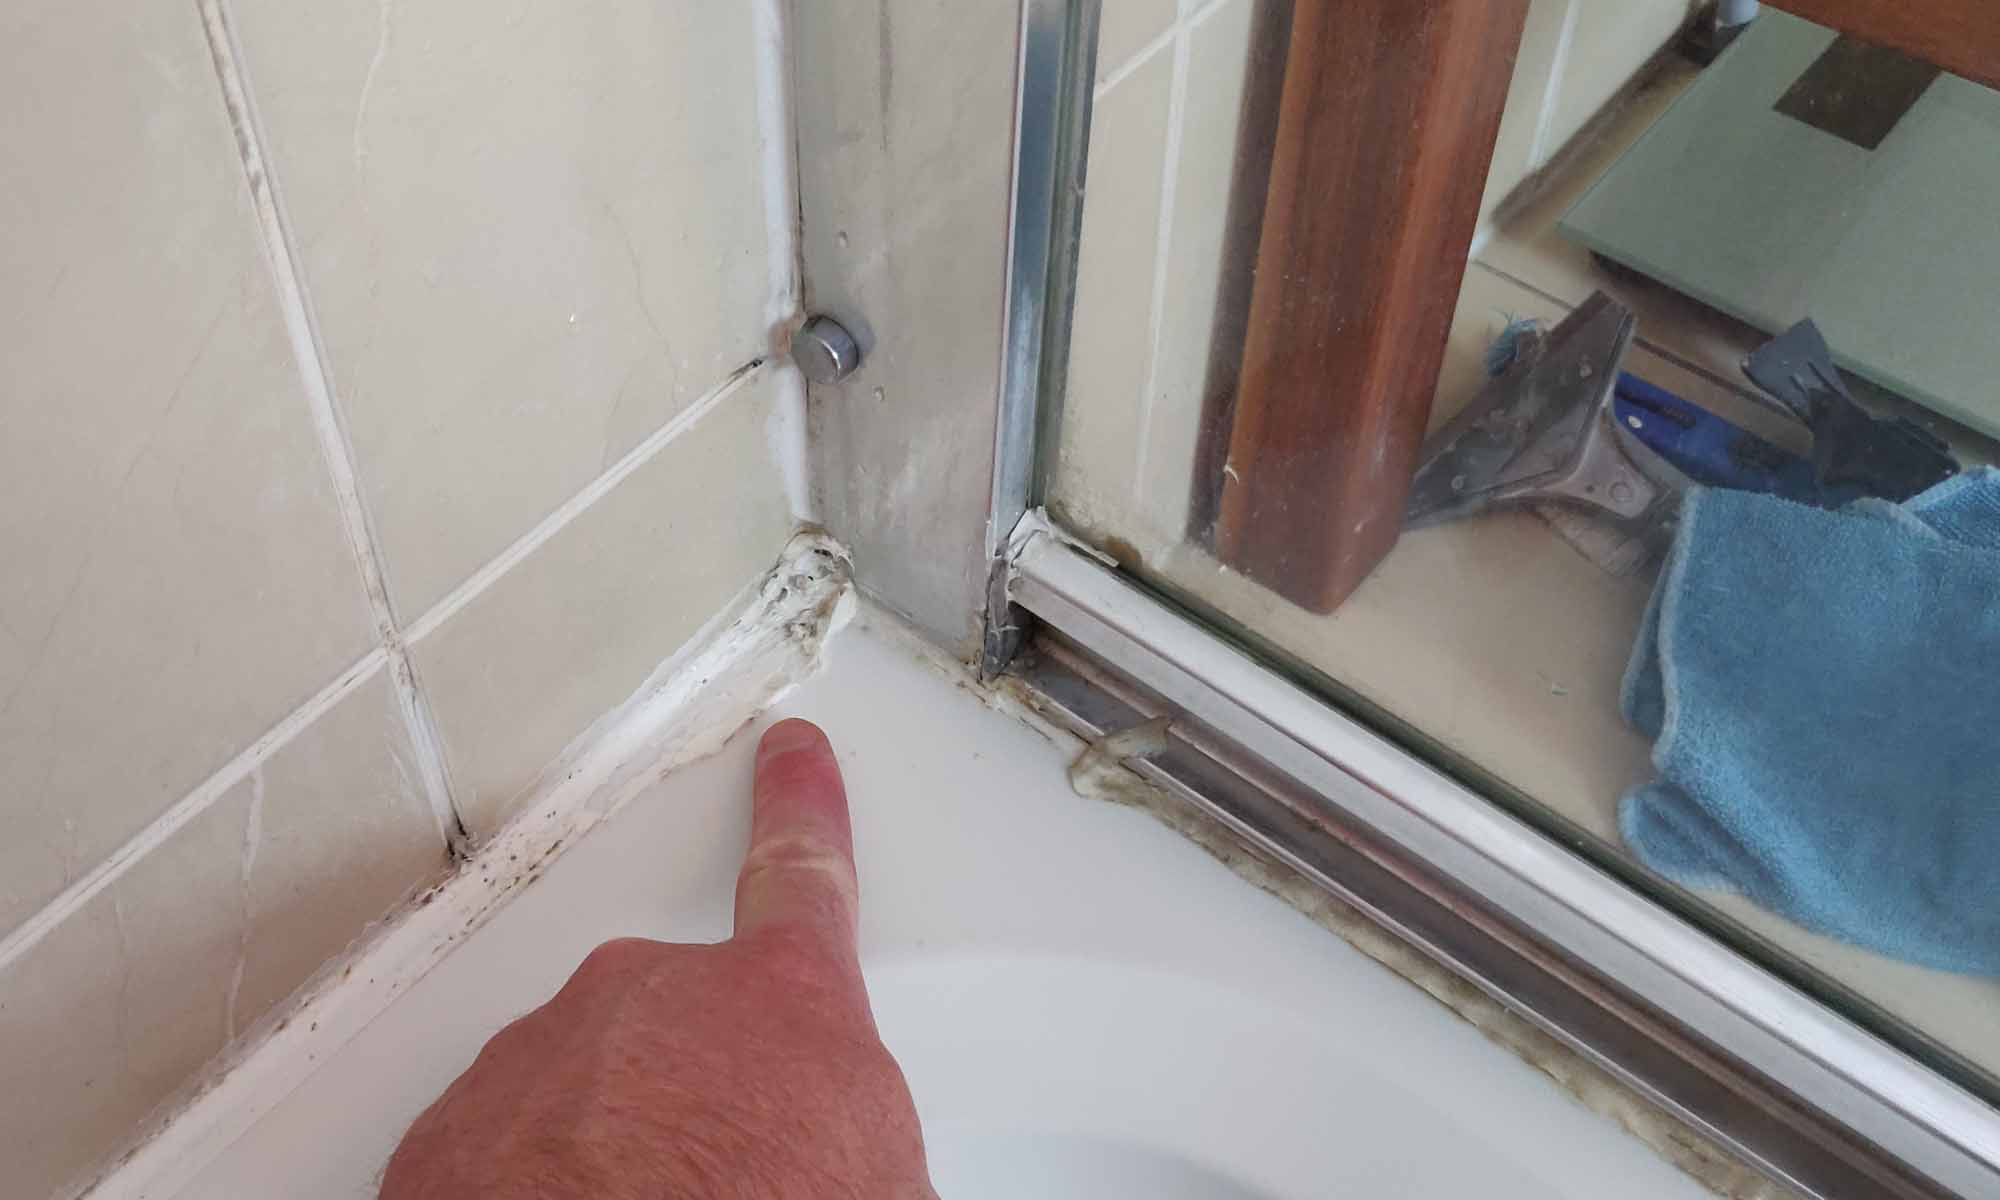 Mouldy Silicone on a Shower